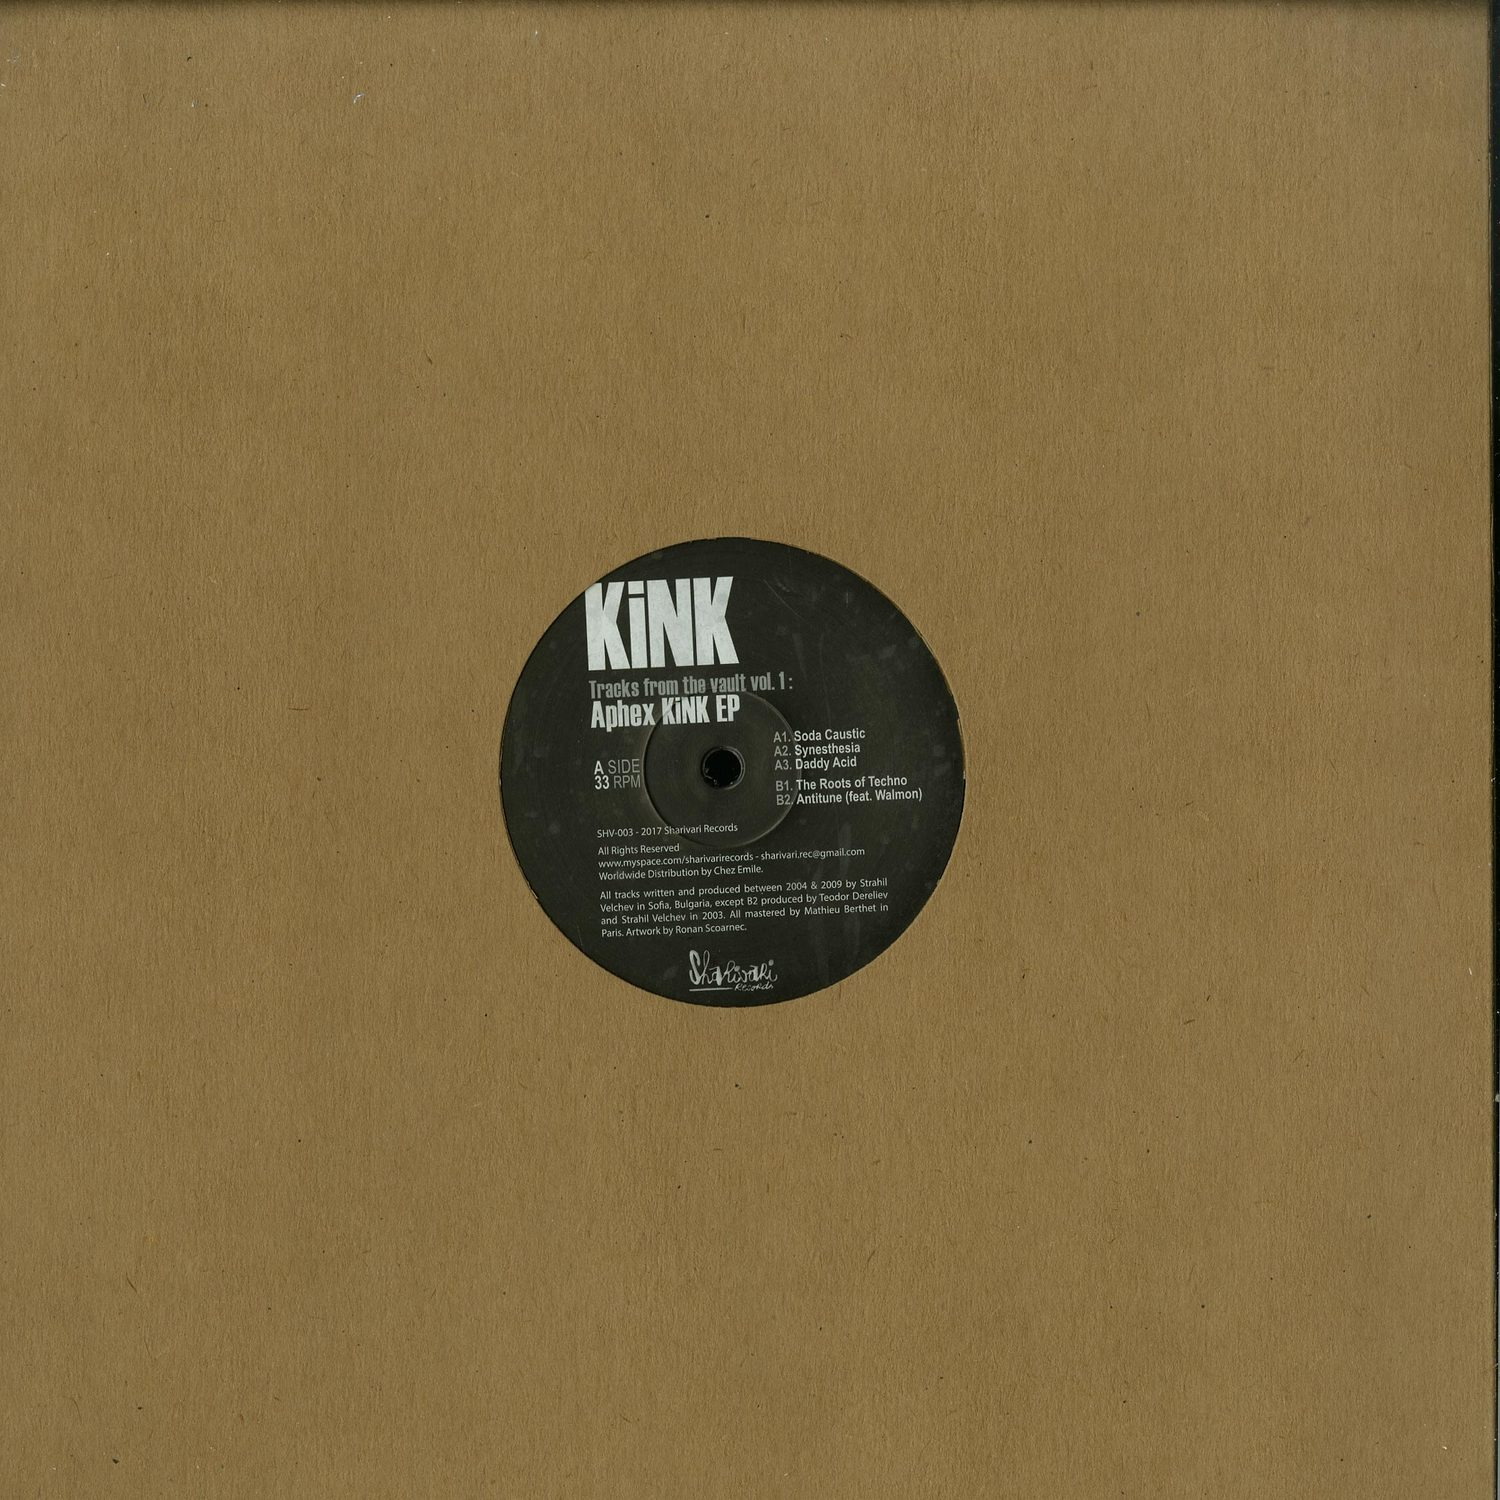 KiNK - TRACKS FROM THE VAULT VOL.1 : APHEX KINK EP